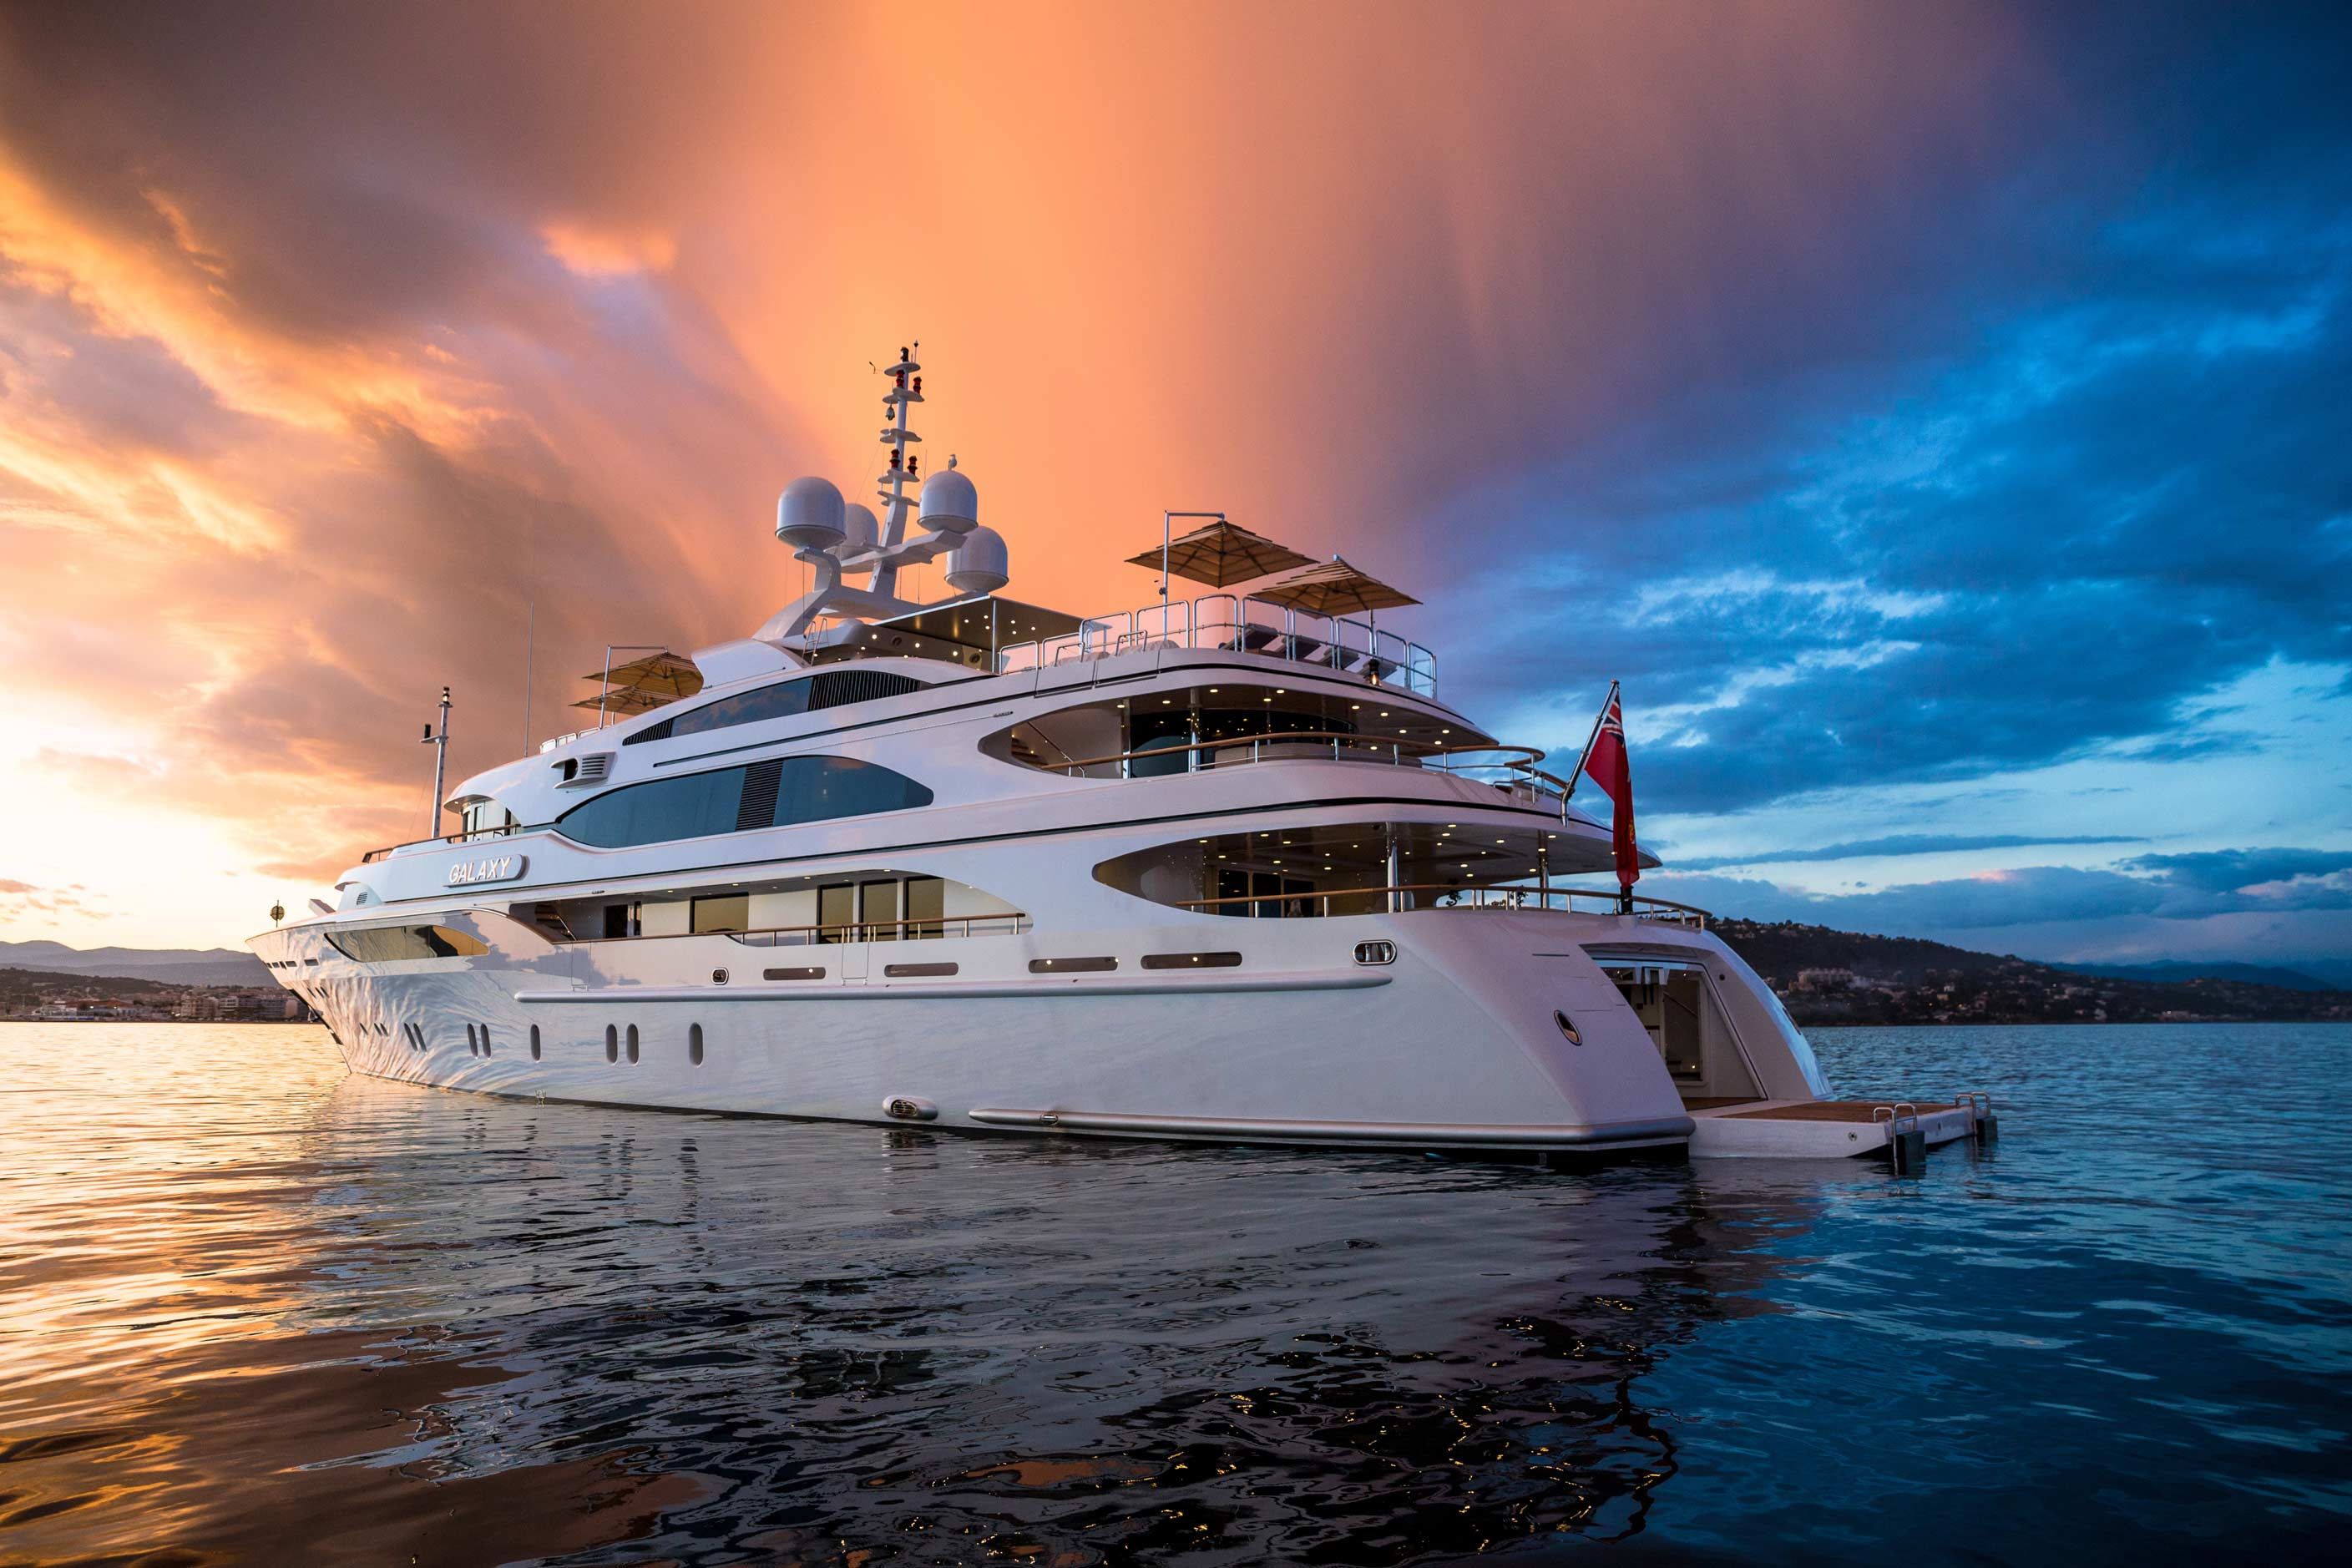 Luxury motor yacht Galaxy - Photo by Jeff Brown